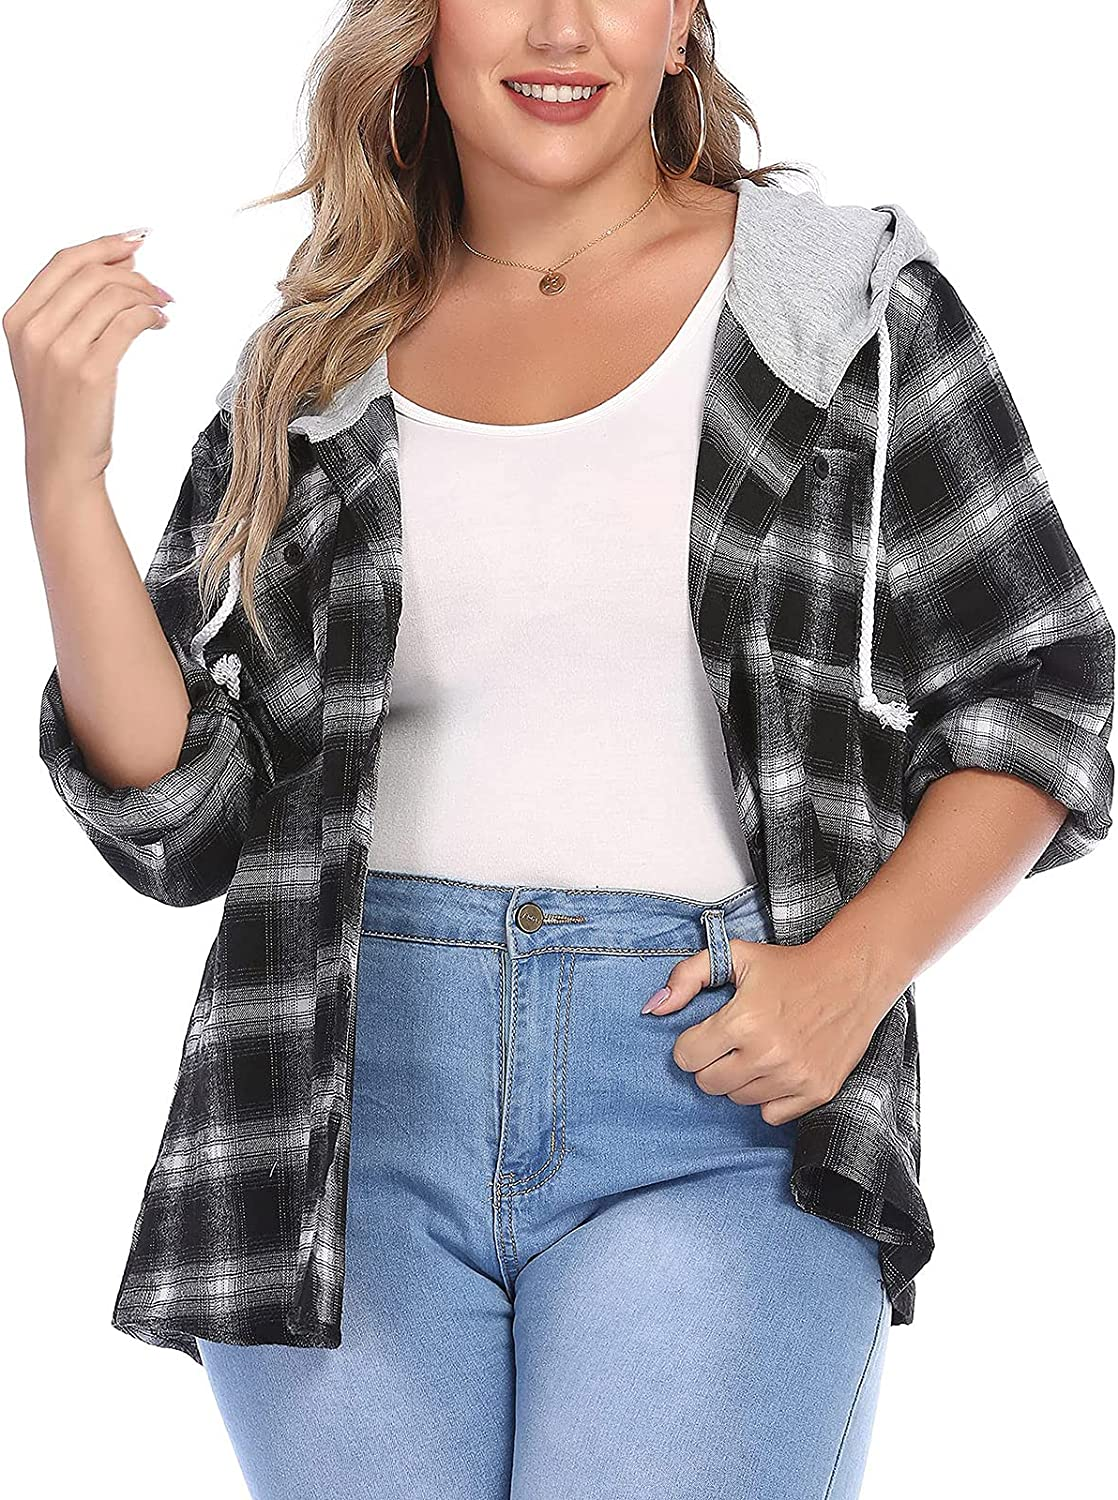 Plus Size Shirt for Womens Flannel Plaid Hoodie Long Sleeve Crewneck Jacket with Hood Button Down Casual Shirts